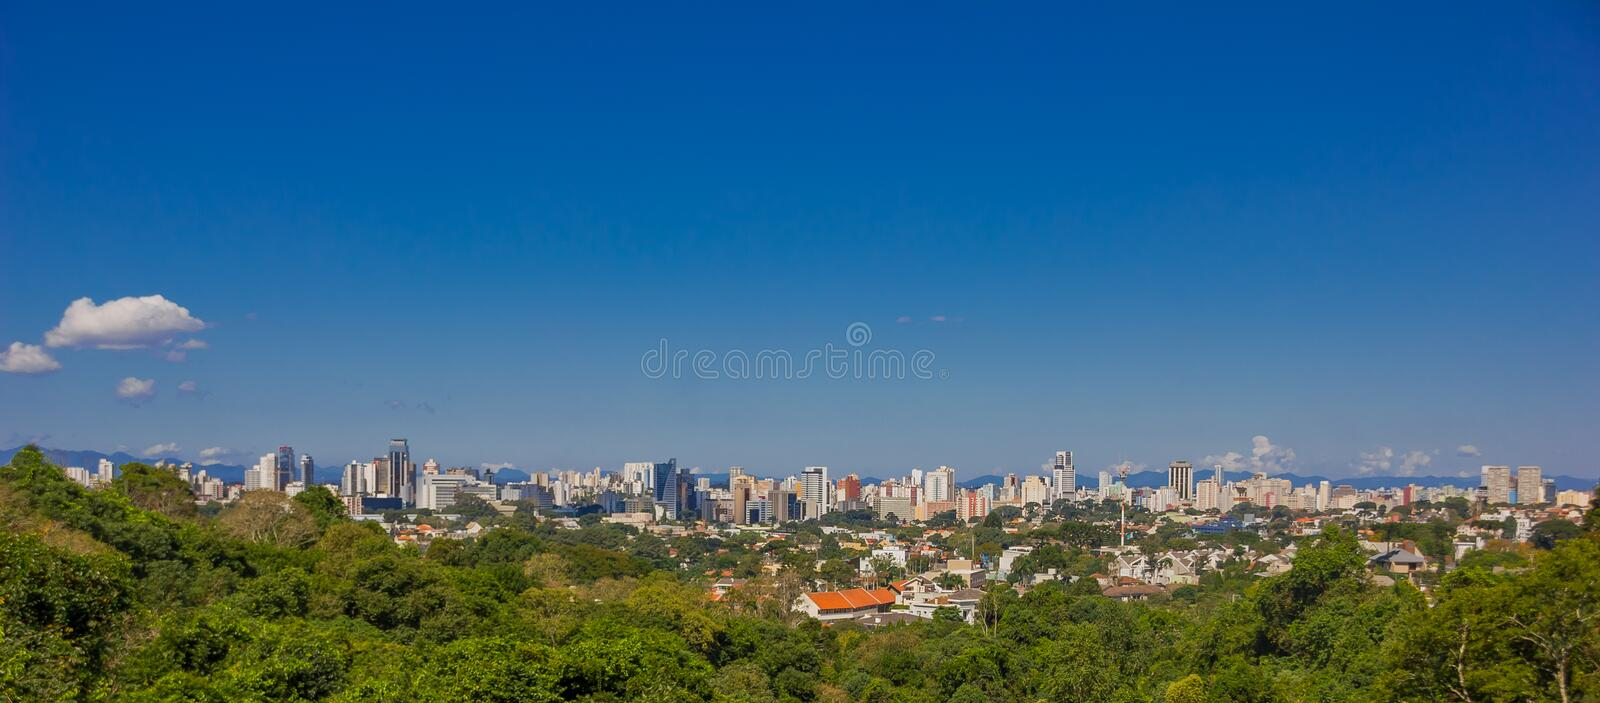 CURITIBA ,BRAZIL - MAY 12, 2016: panoramic view of the city from a city park located in vista alegre neighborhood stock photos